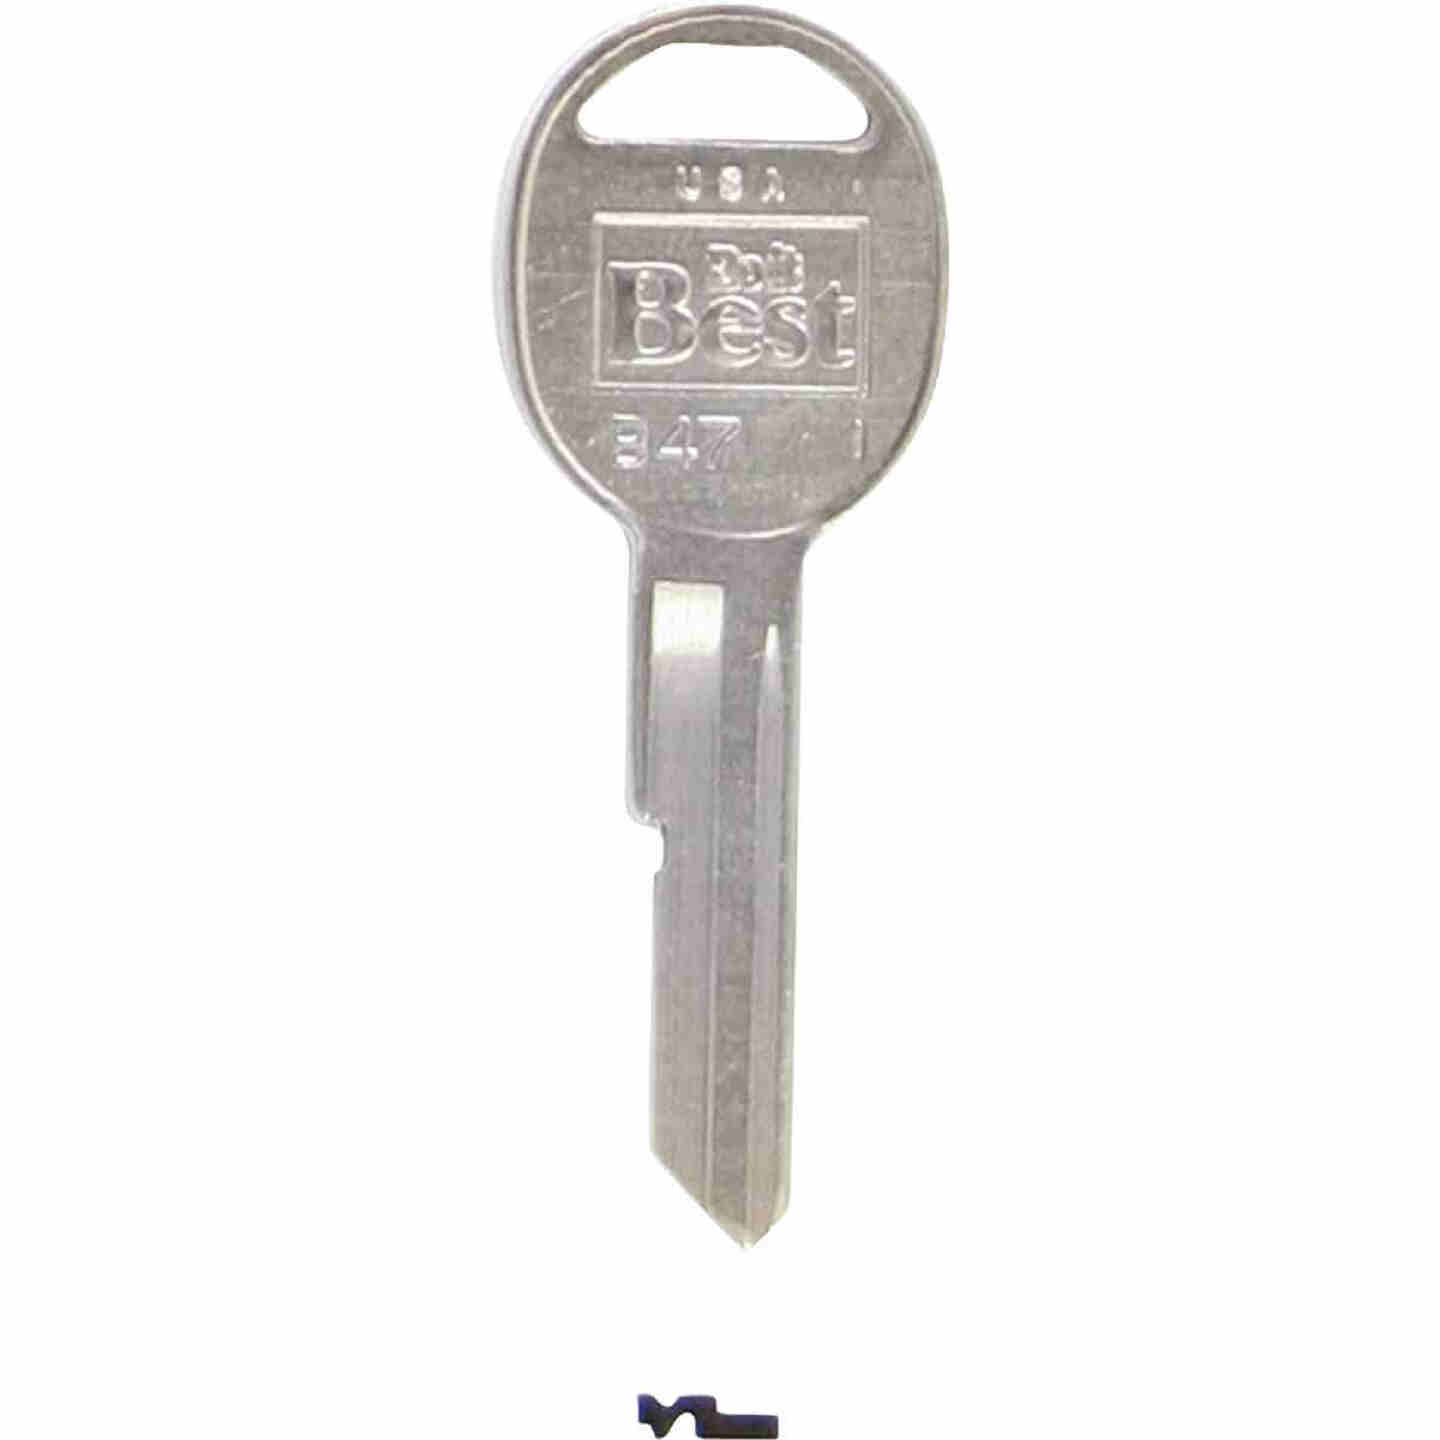 Do it Best GM Nickel Plated Automotive Key, B47 (10-Pack) Image 1